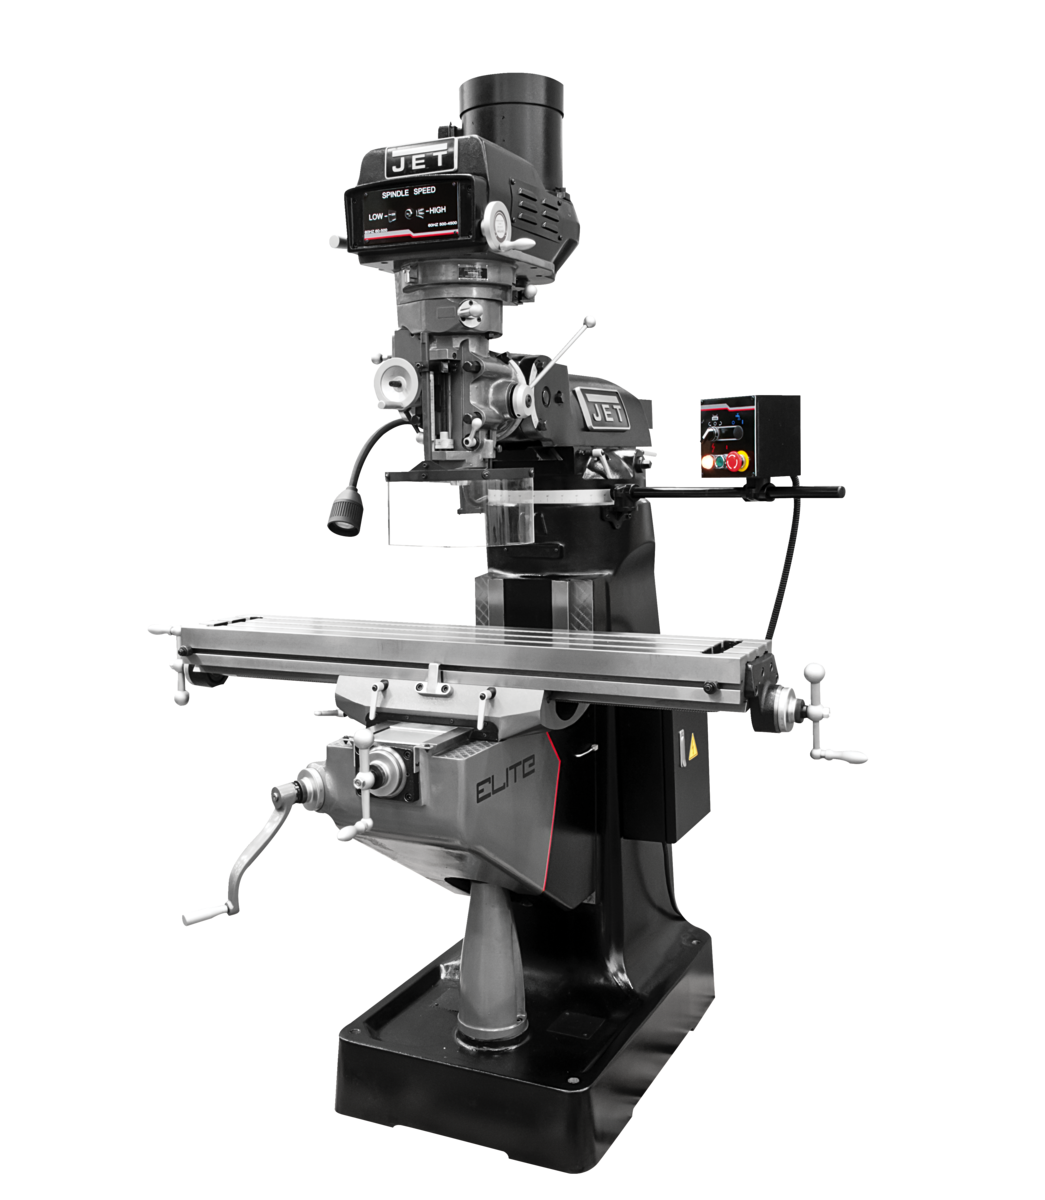 ETM-949 Mill with 3-Axis ACU-RITE 203 (Quill) DRO and X, Y, Z-Axis JET Powerfeeds